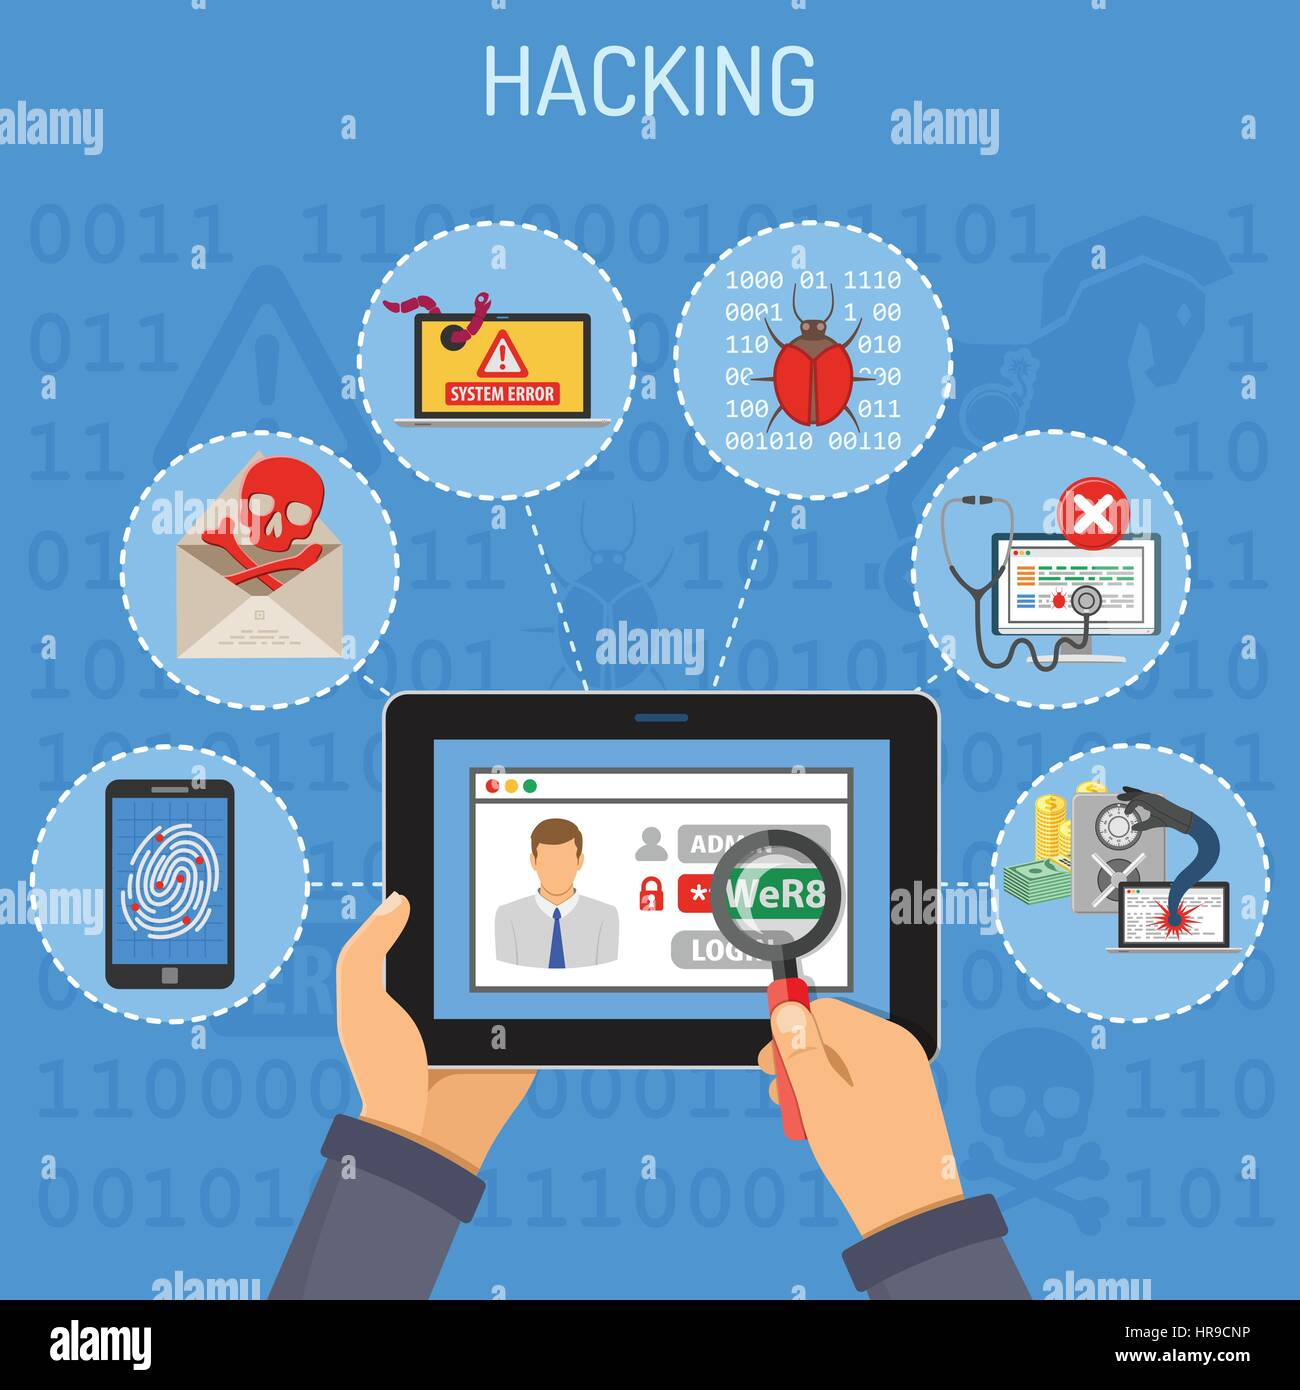 Internet Security and Hacking concept - Stock Vector